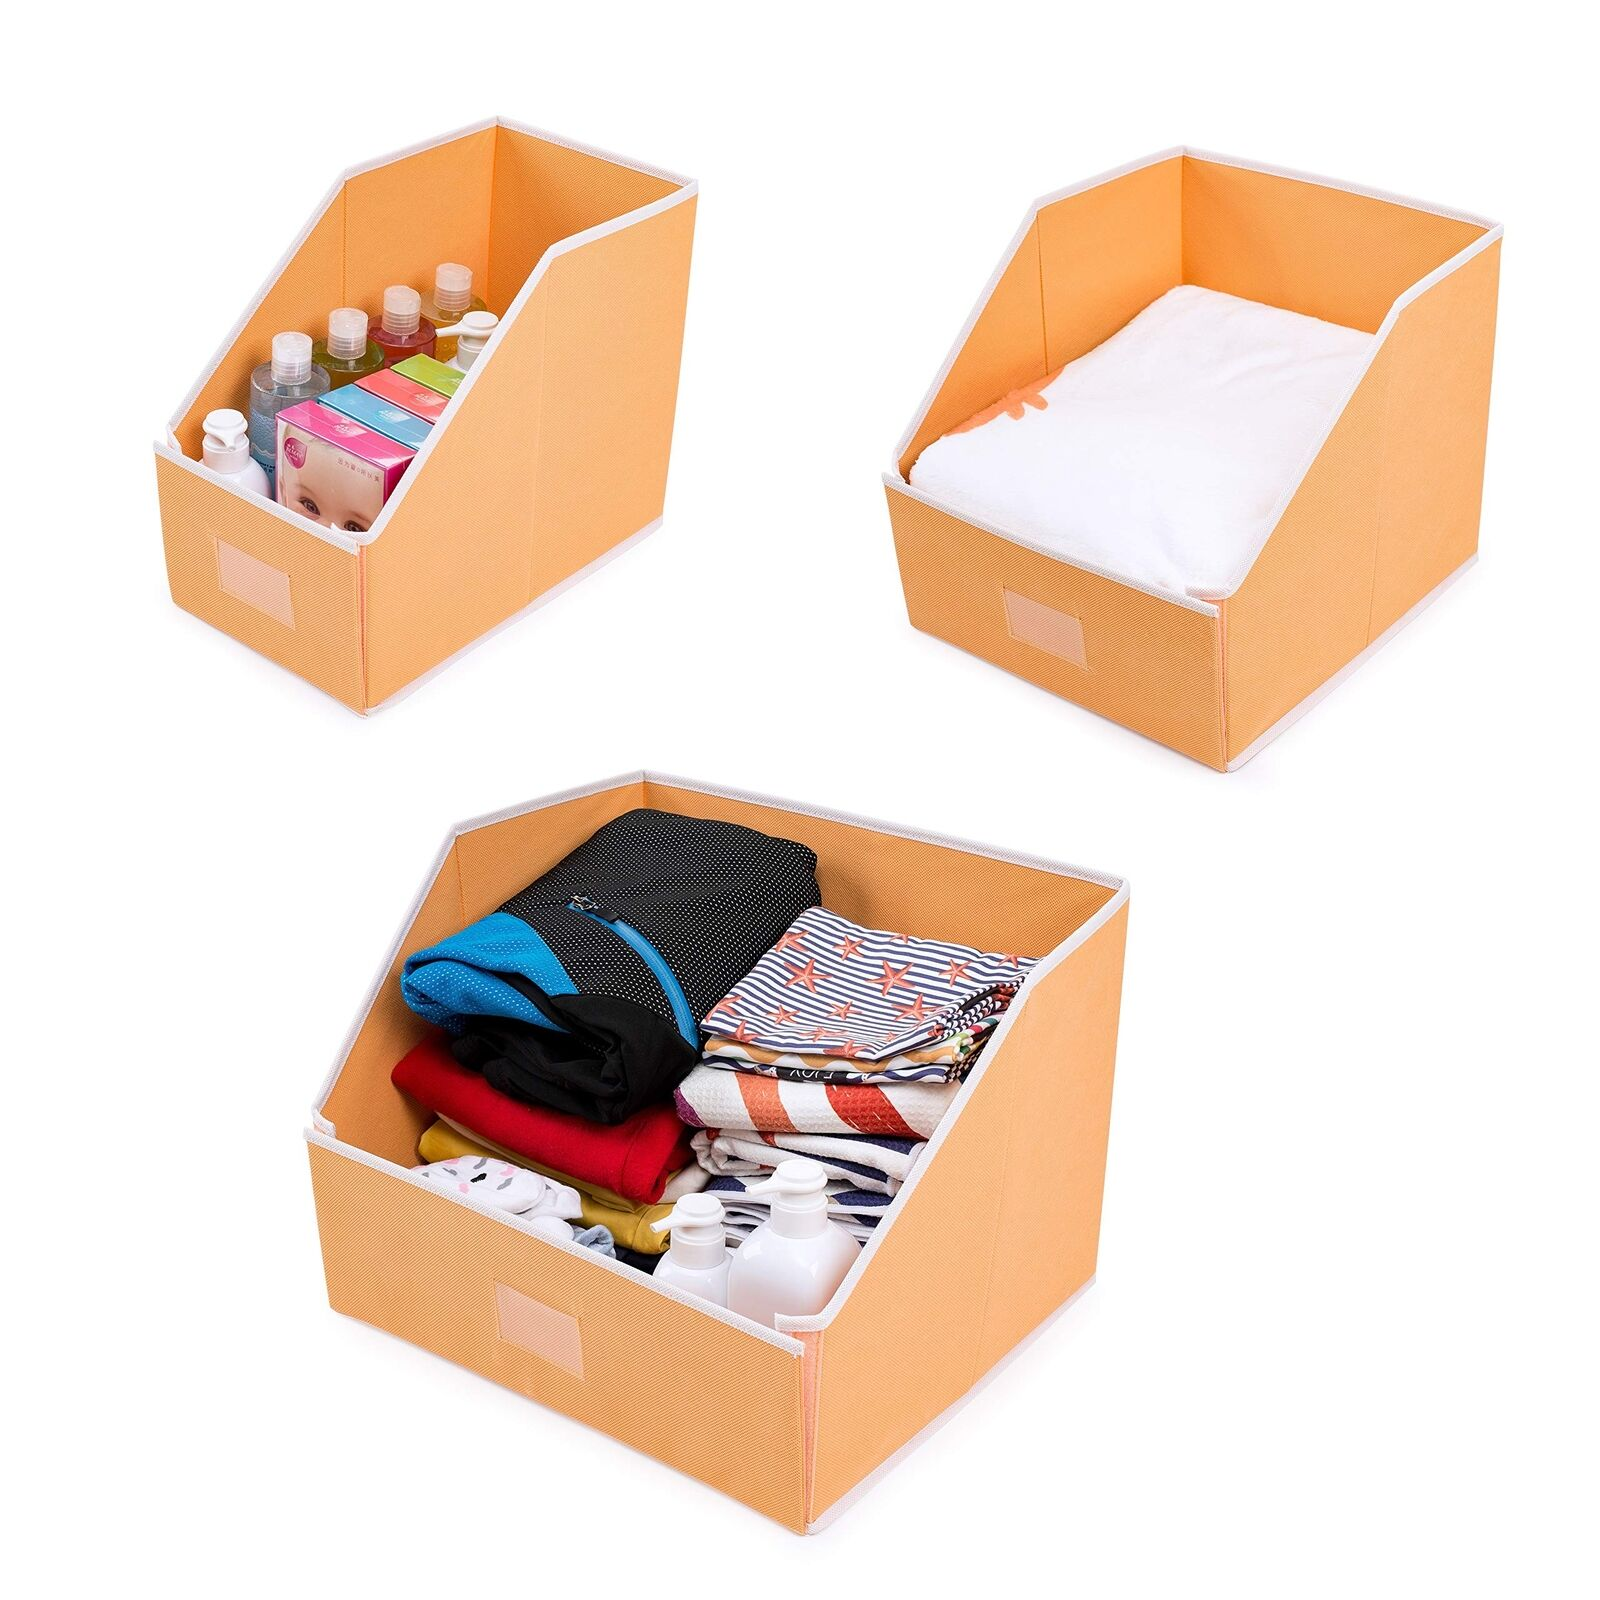 Linen Closet Storage Organizers Set Of 3 Foldable Fabric Bins Baskets To Get